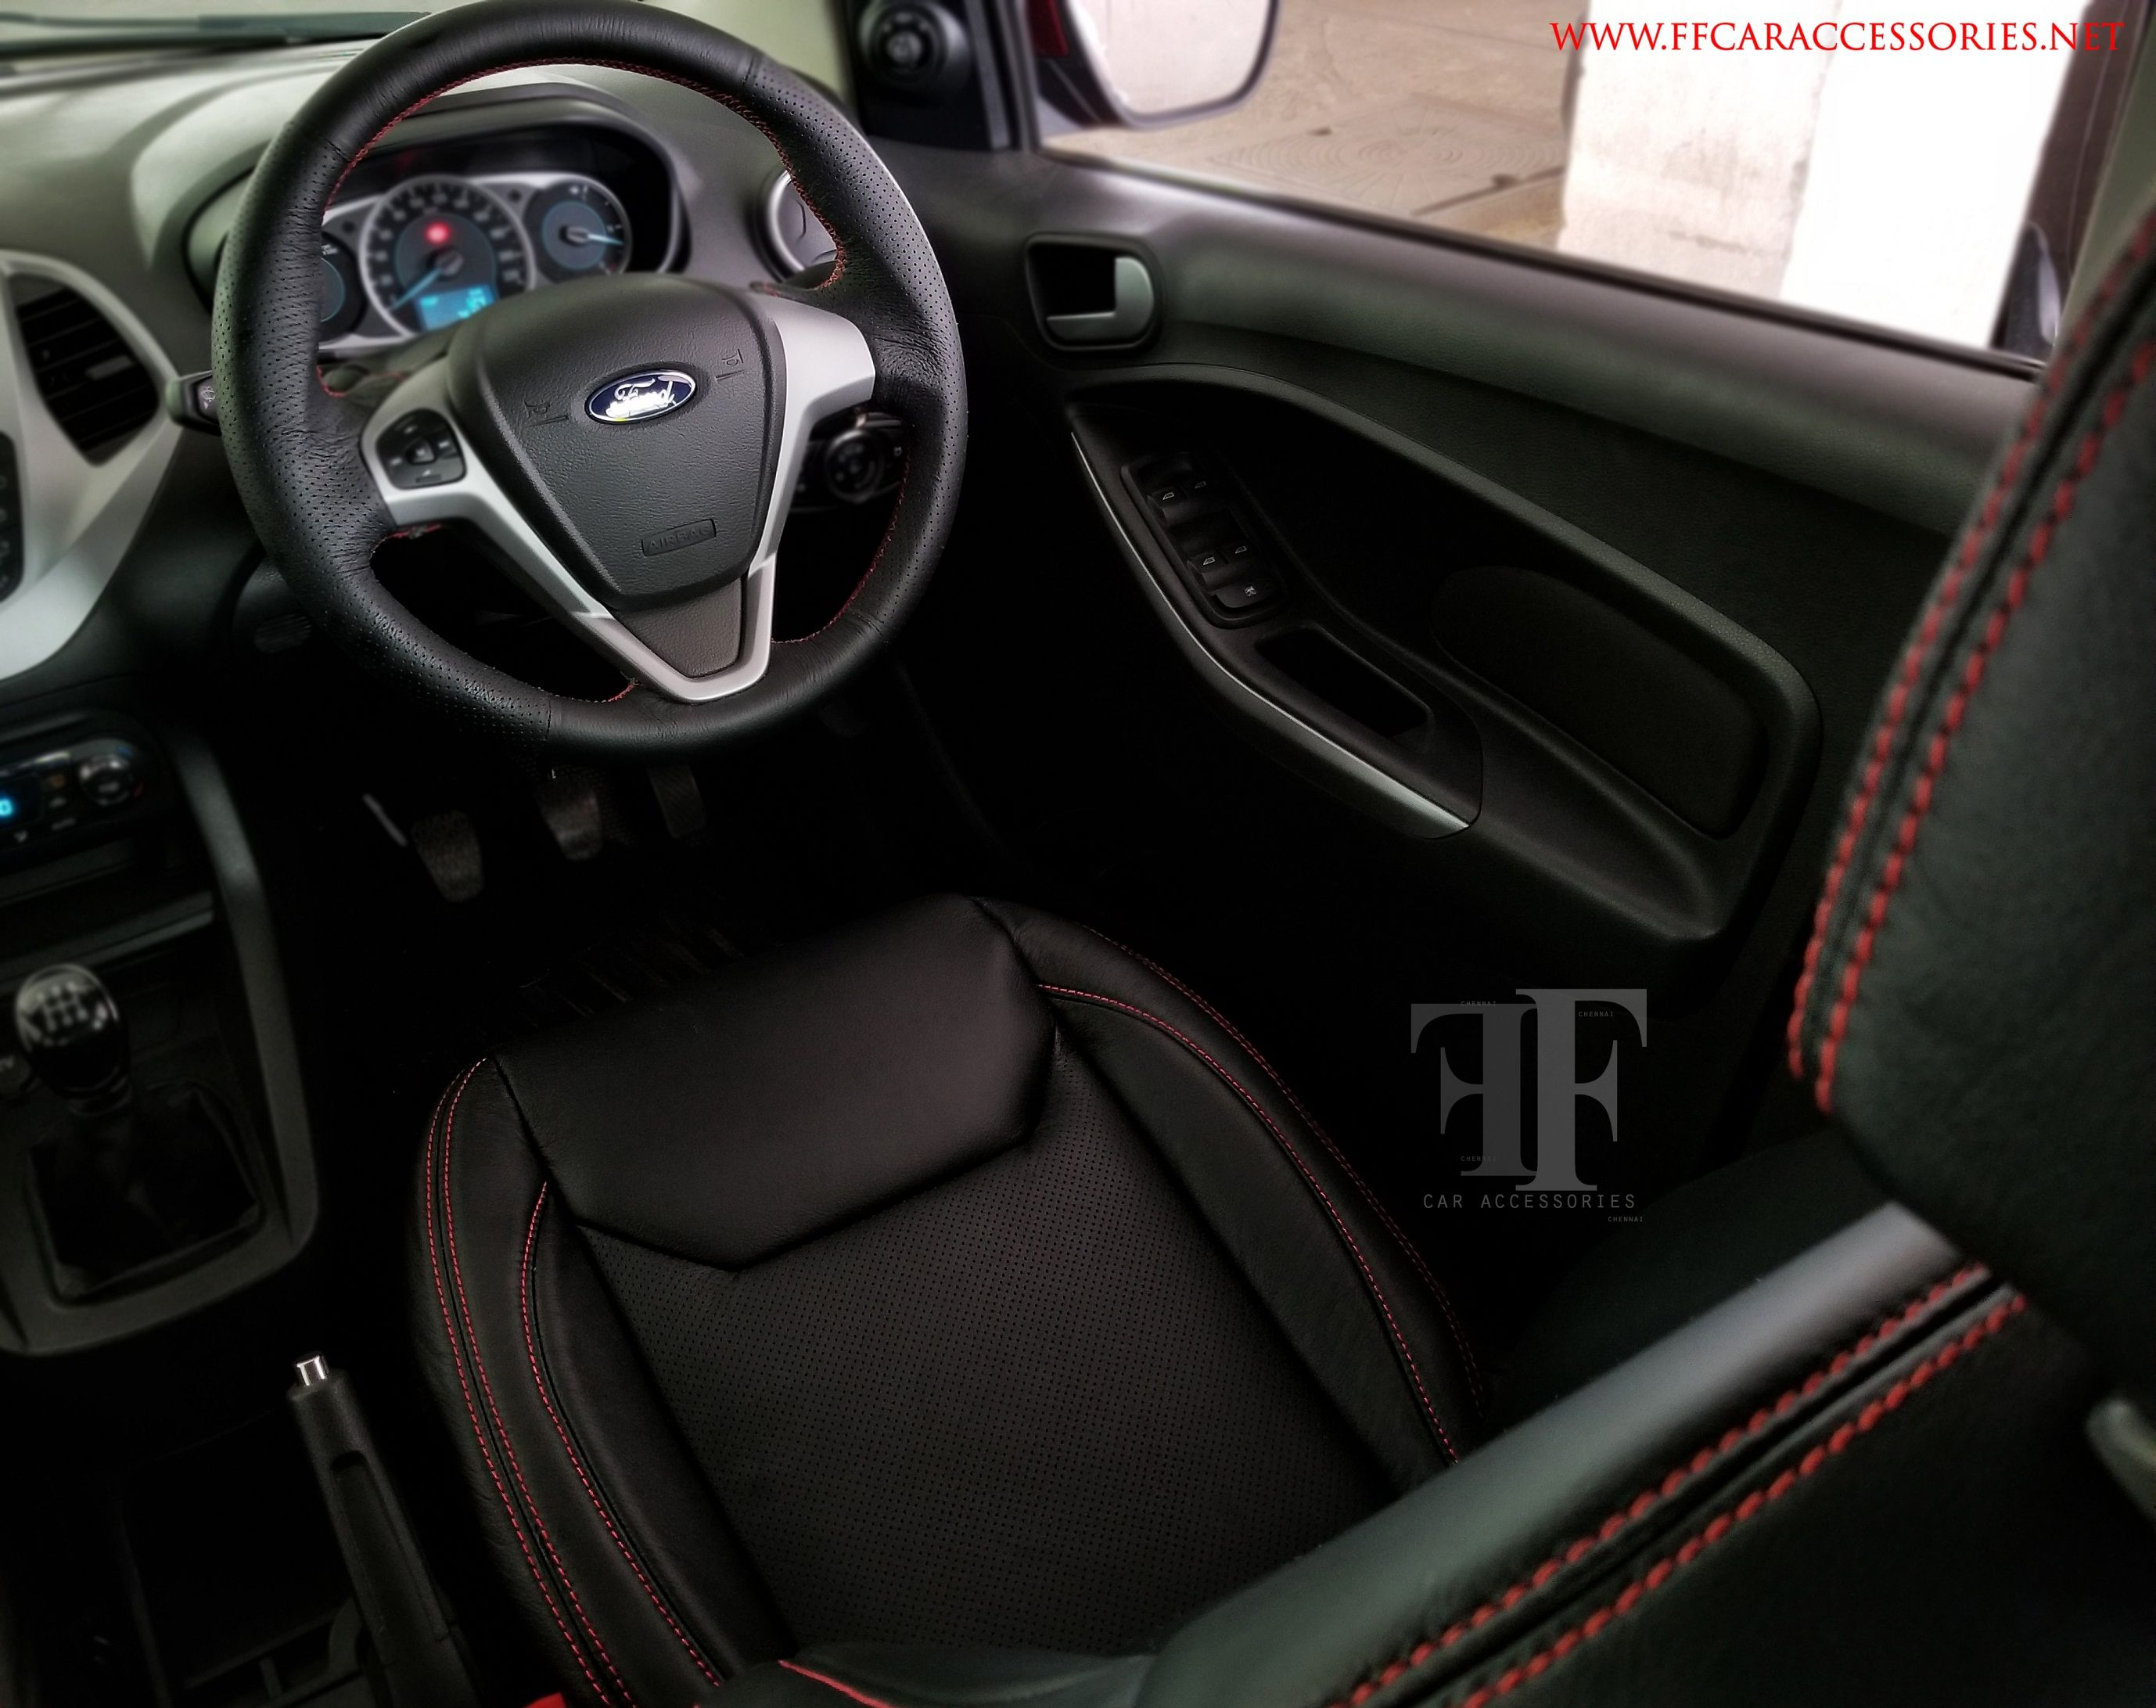 Best car modifier and car interior designer Chennai Car